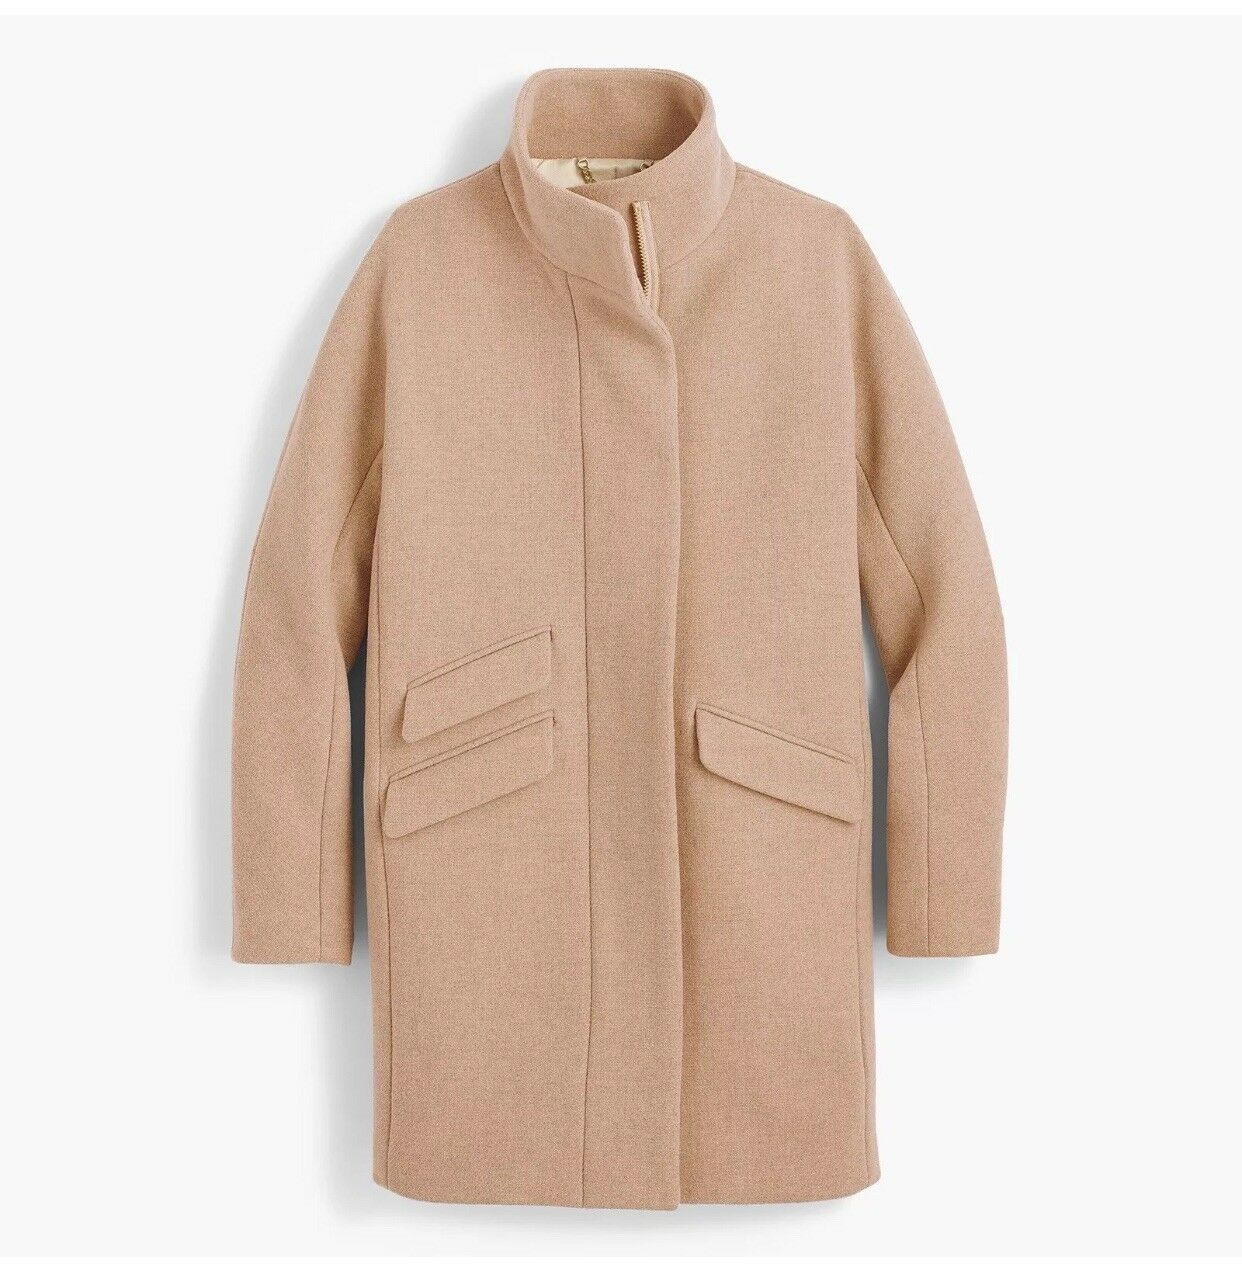 NWT JCrew Cocoon Coat in Italian stadium-cloth wool SZ 12P P12 sandstone G9236